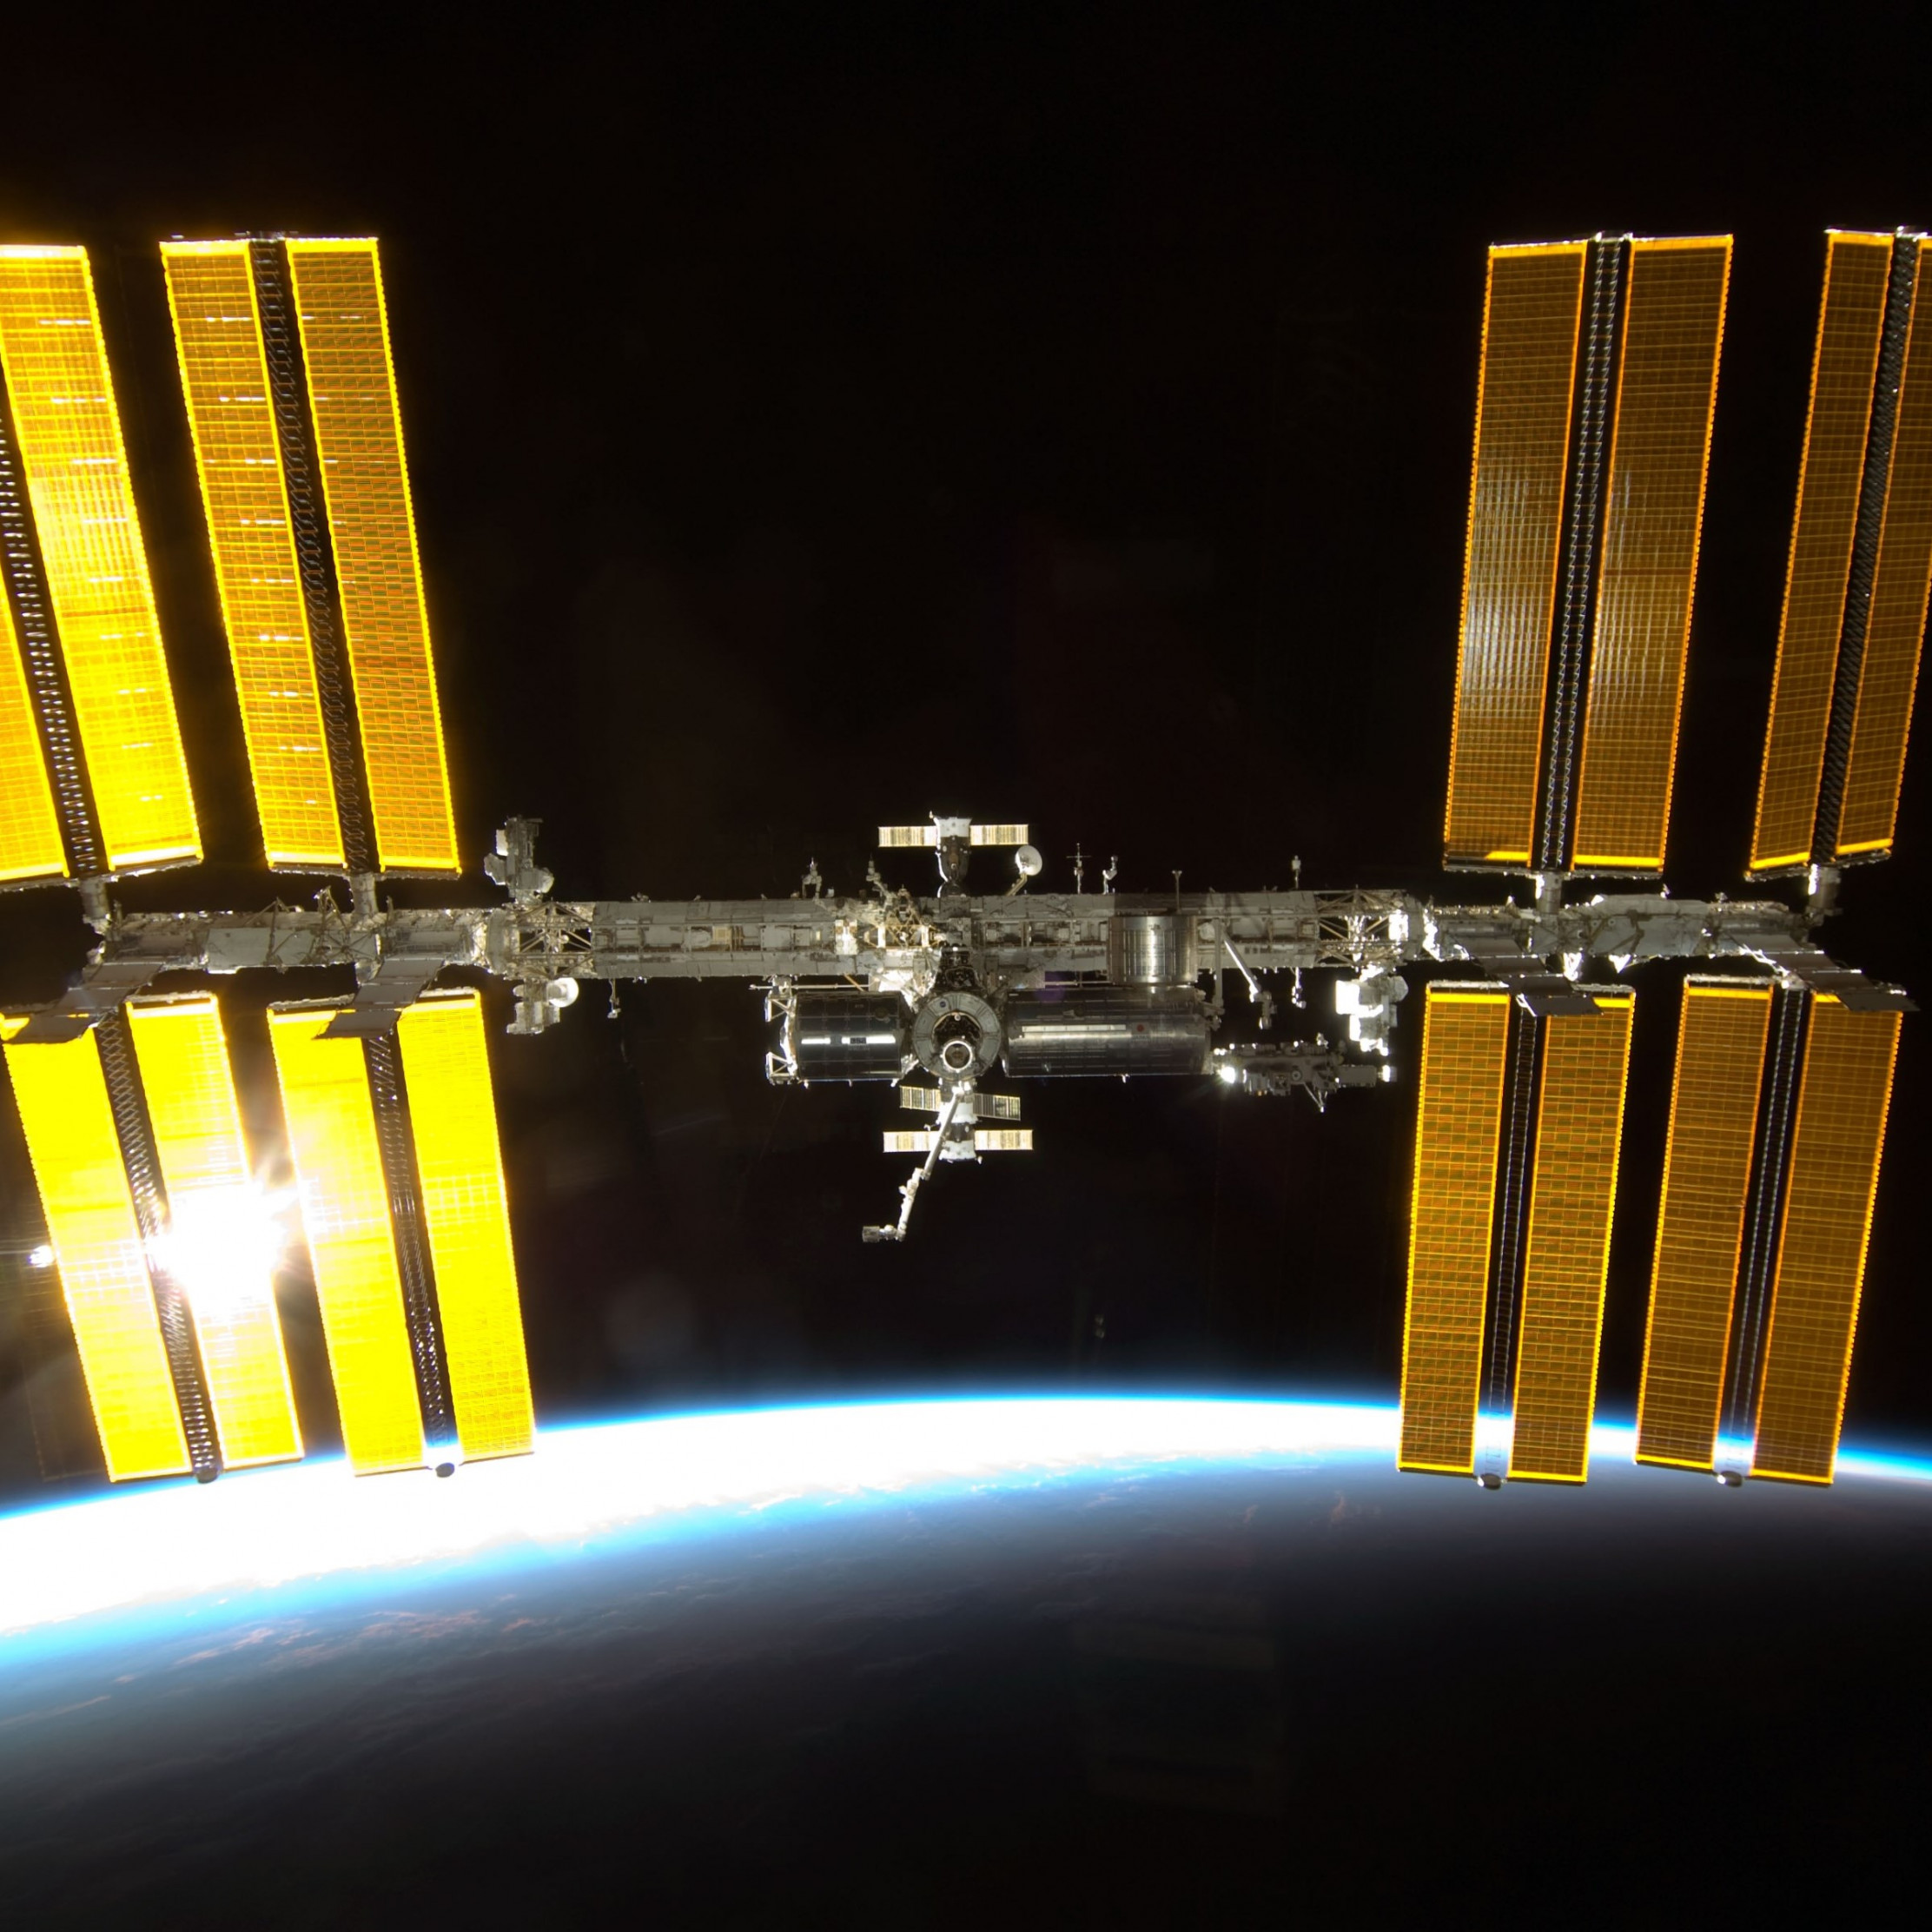 International Space Station wallpaper 2224x2224